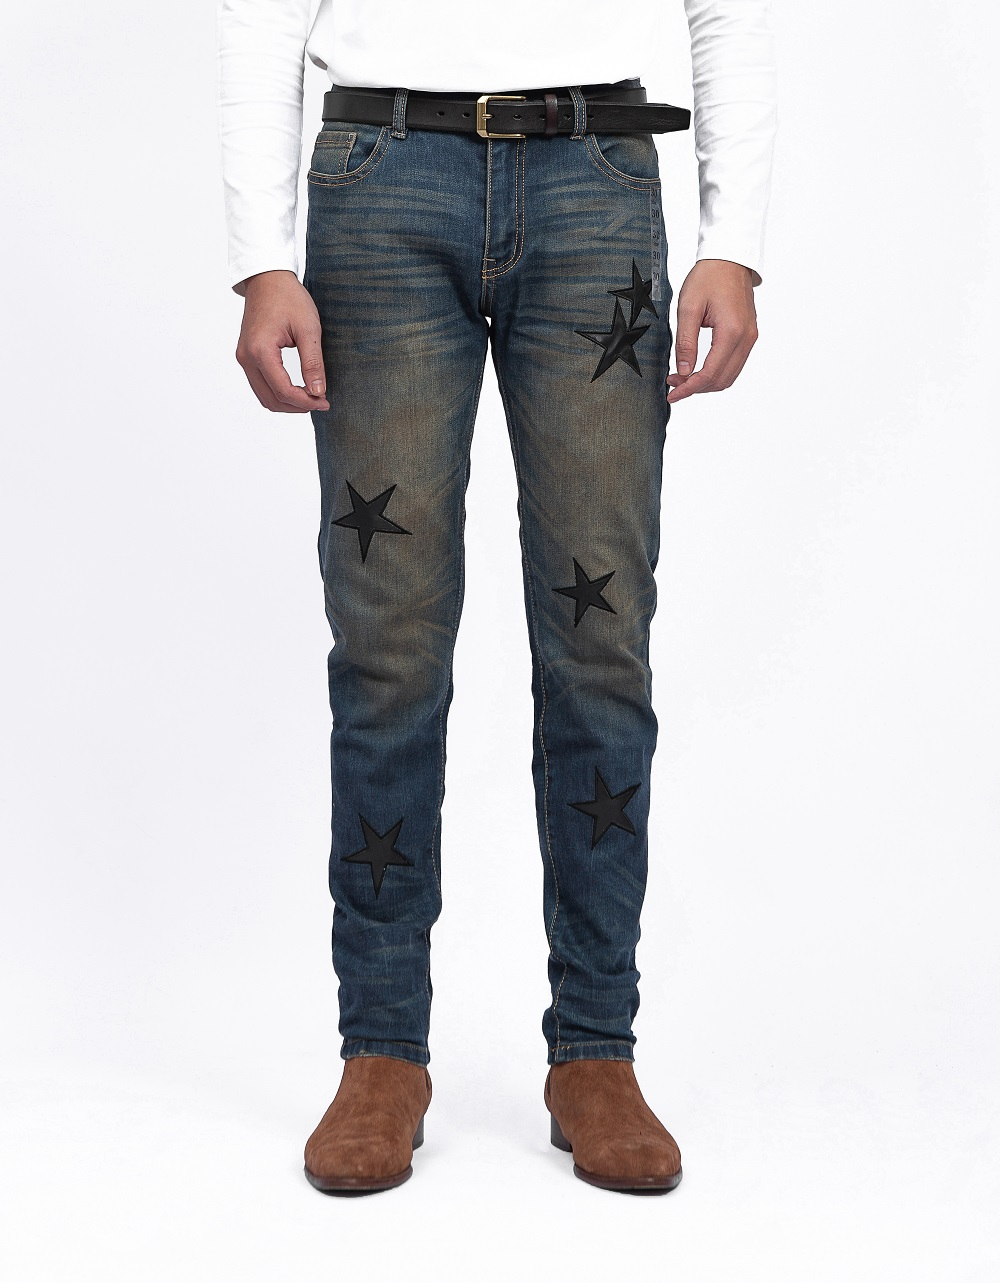 Leather Star Jeans